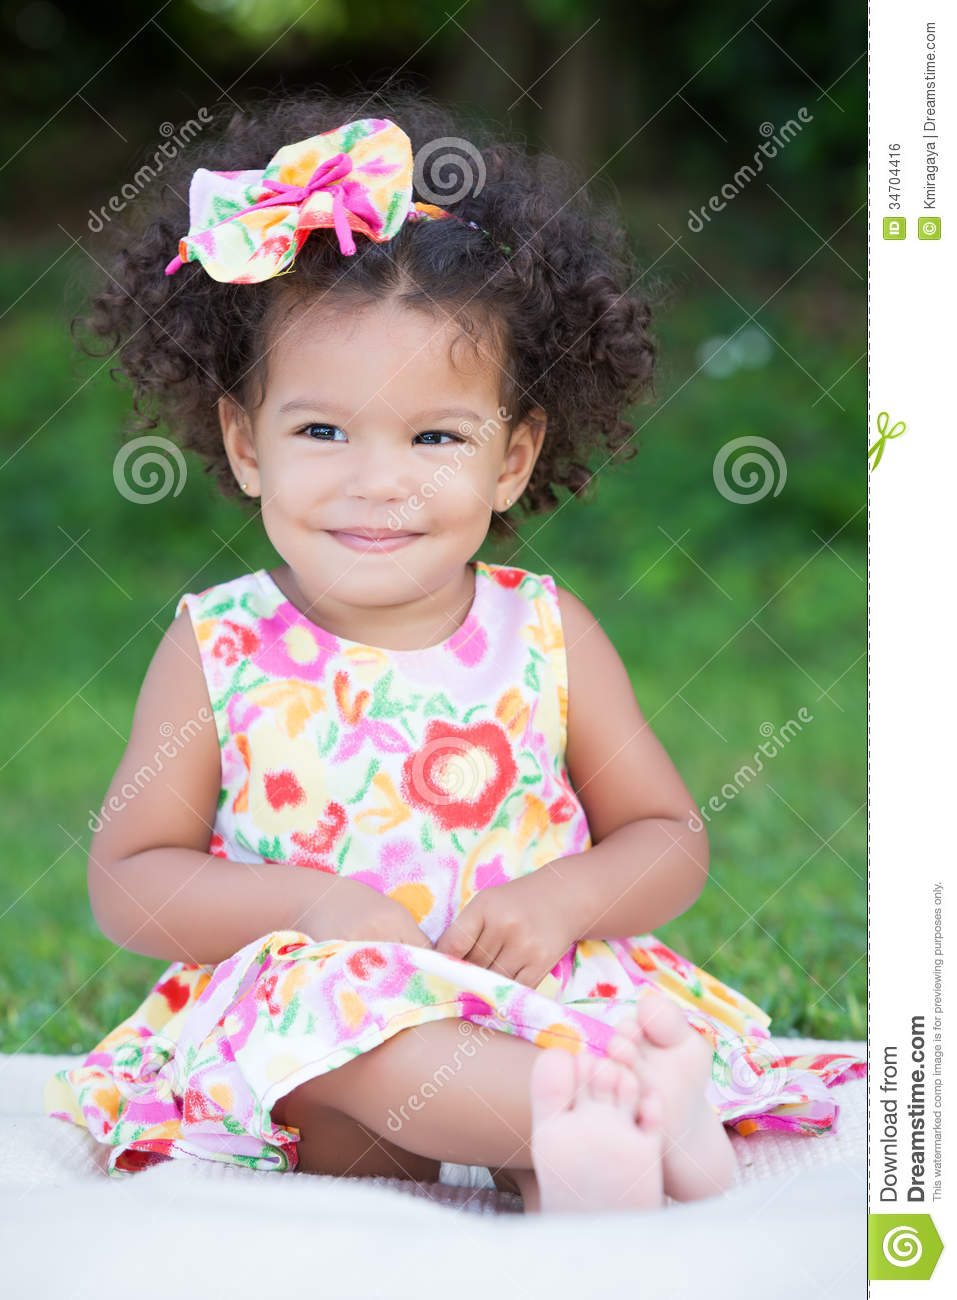 Small Girl With An Afro Hairstyle Sitting On The Grass Stock Photo - Hairstyle small girl